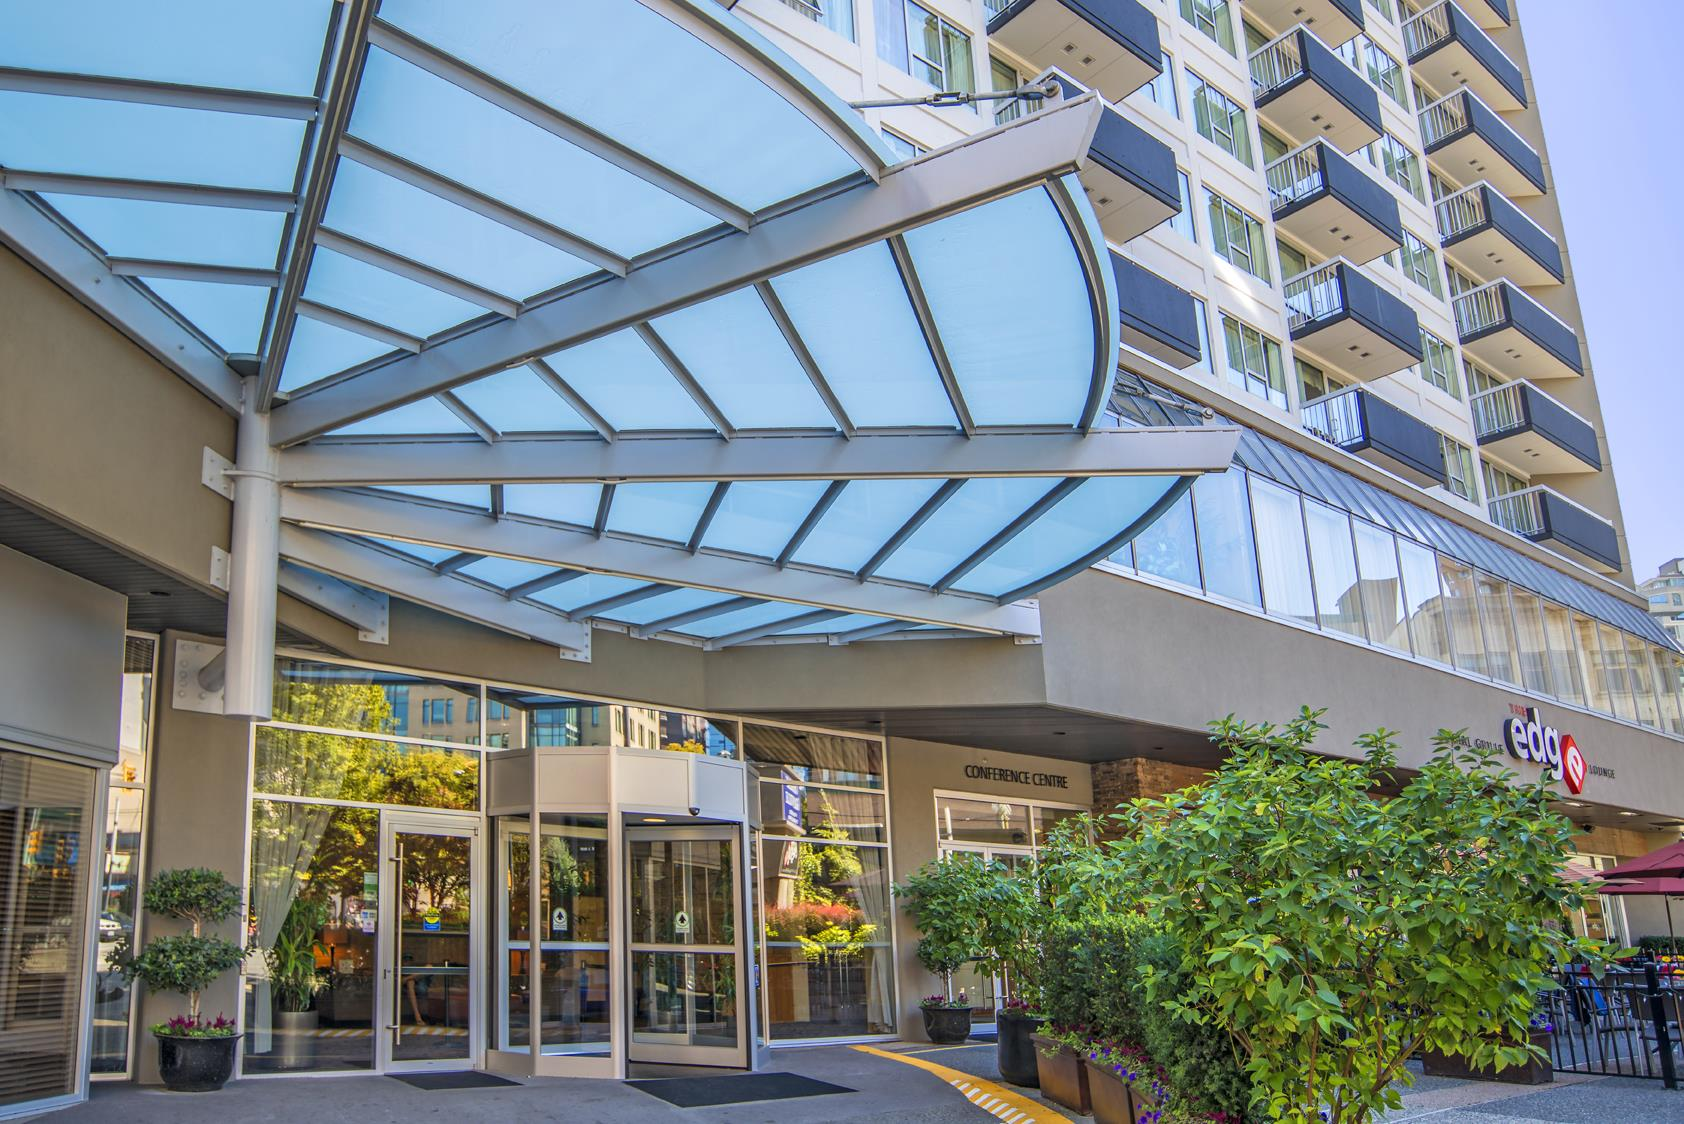 Best Western Plus Chateau Granville Hotel & Suites & Conference Ctr. in Vancouver: Hotel Entrance